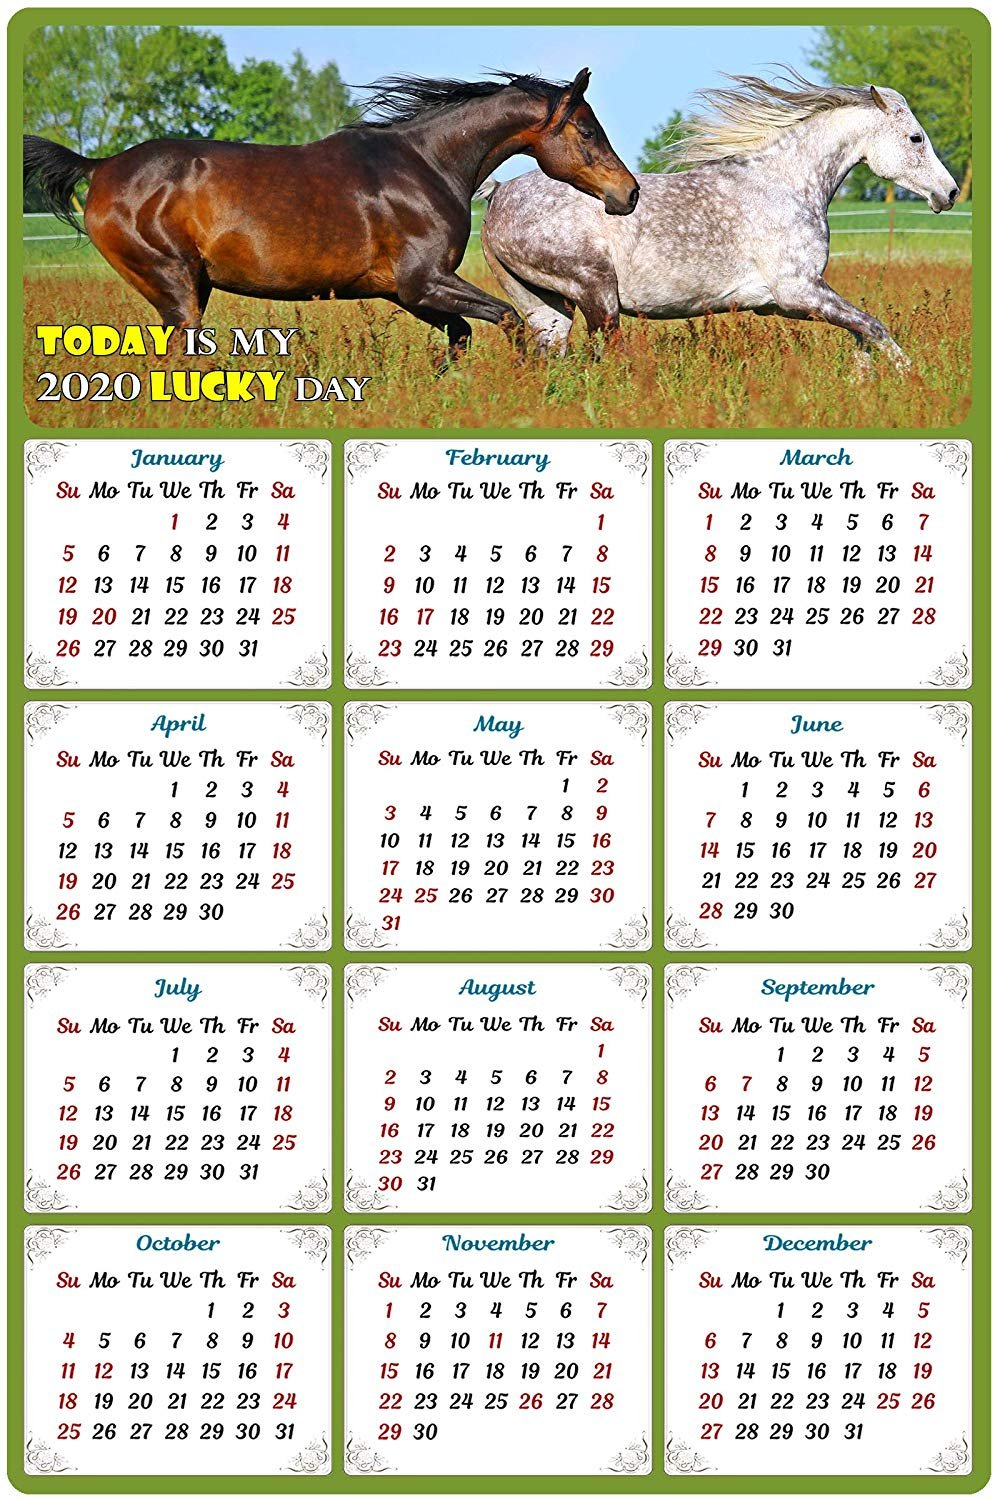 2020 Magnetic Calendar - Calendar Magnets - Today is My Lucky Day - Horses Edition #003